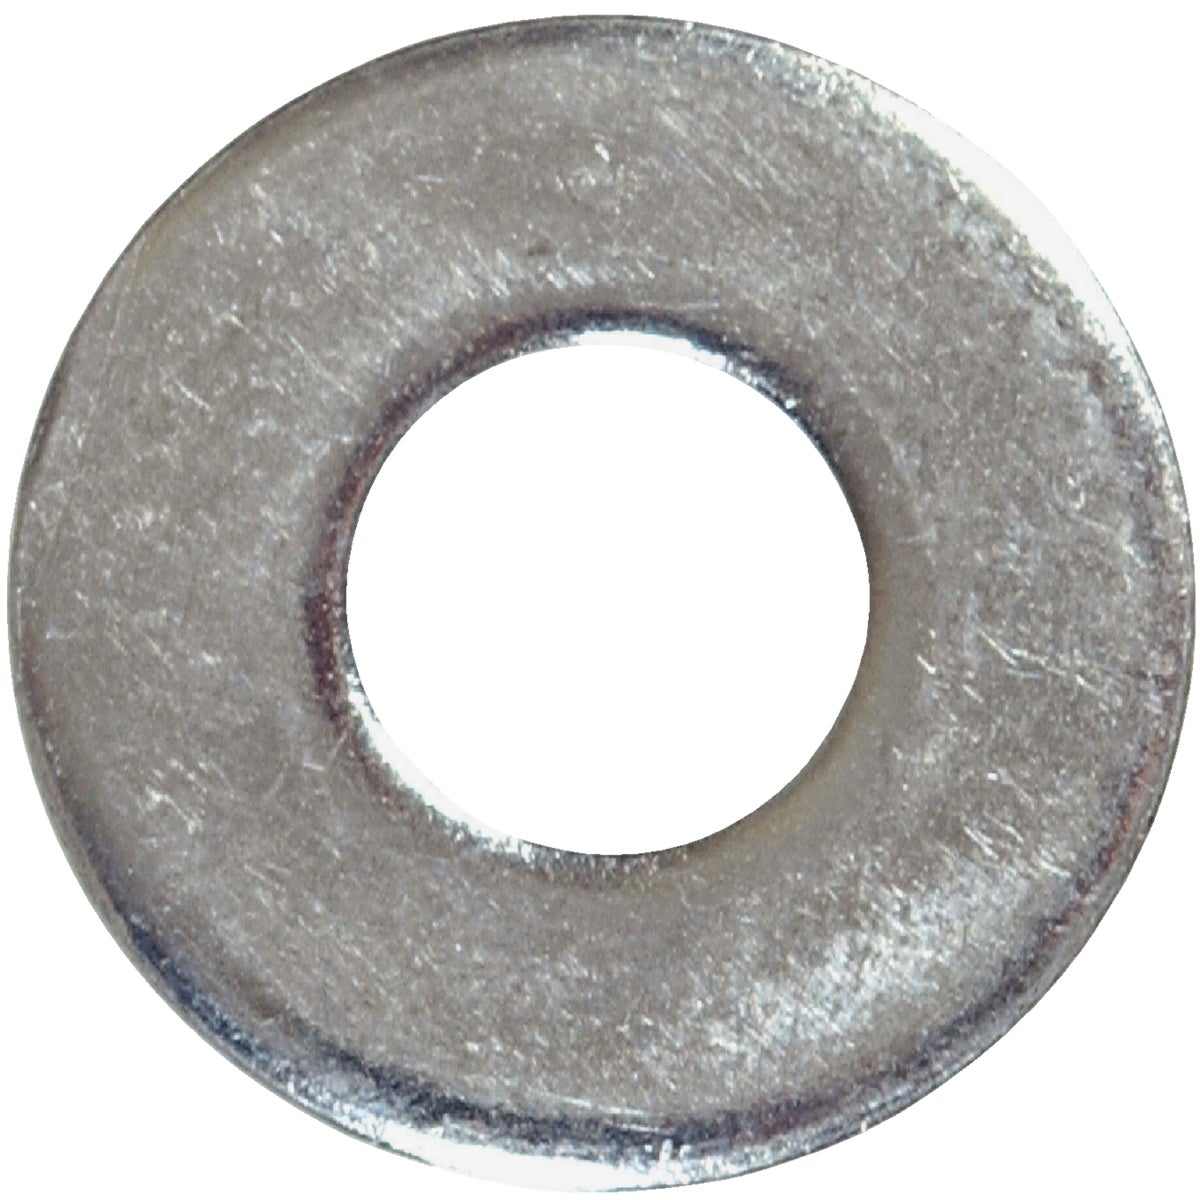 "5LB 5/16"" USS FLT WASHER"